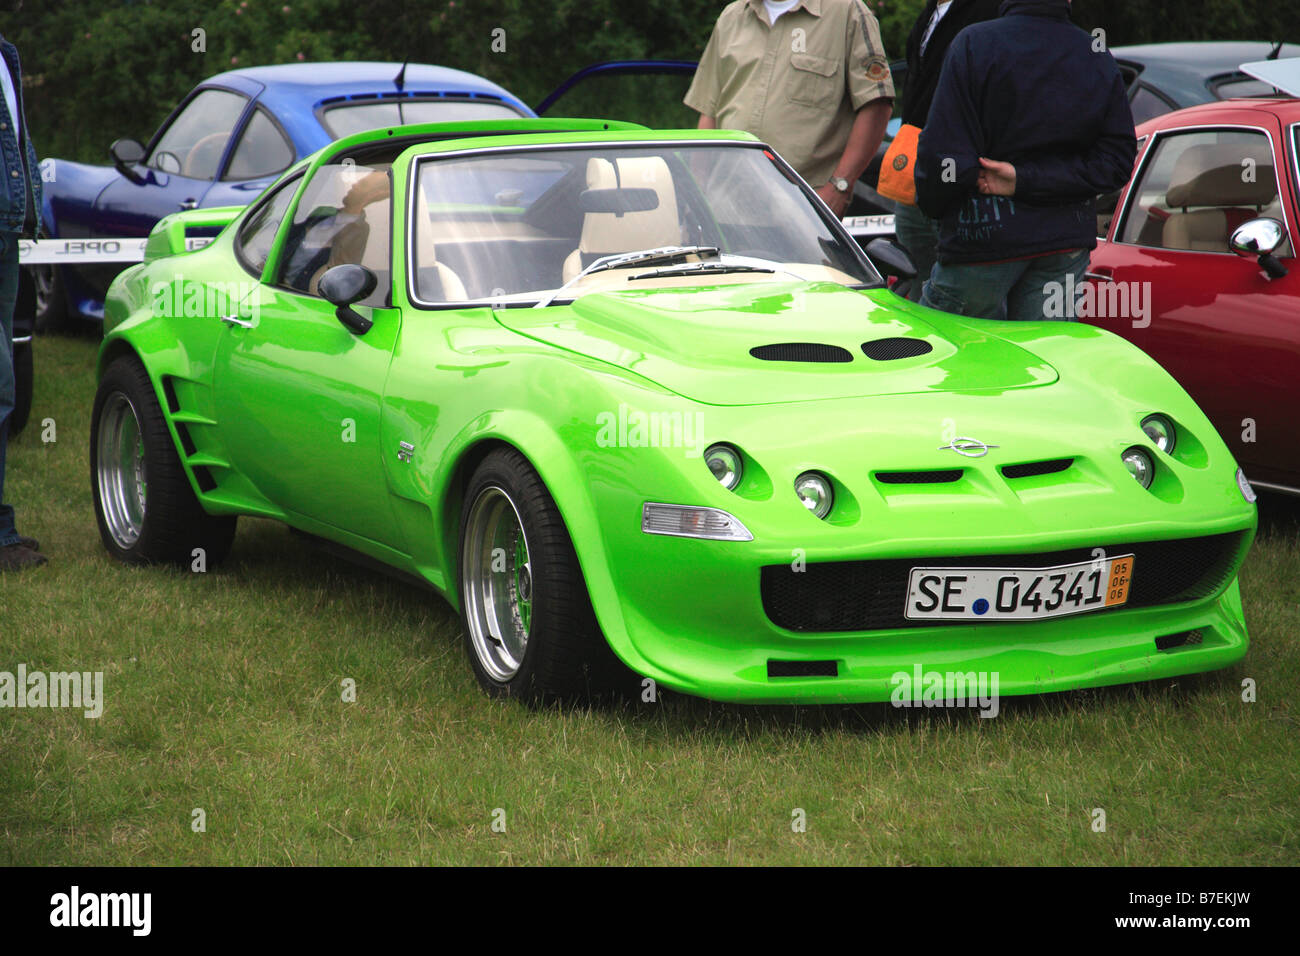 Lime Green Race Car